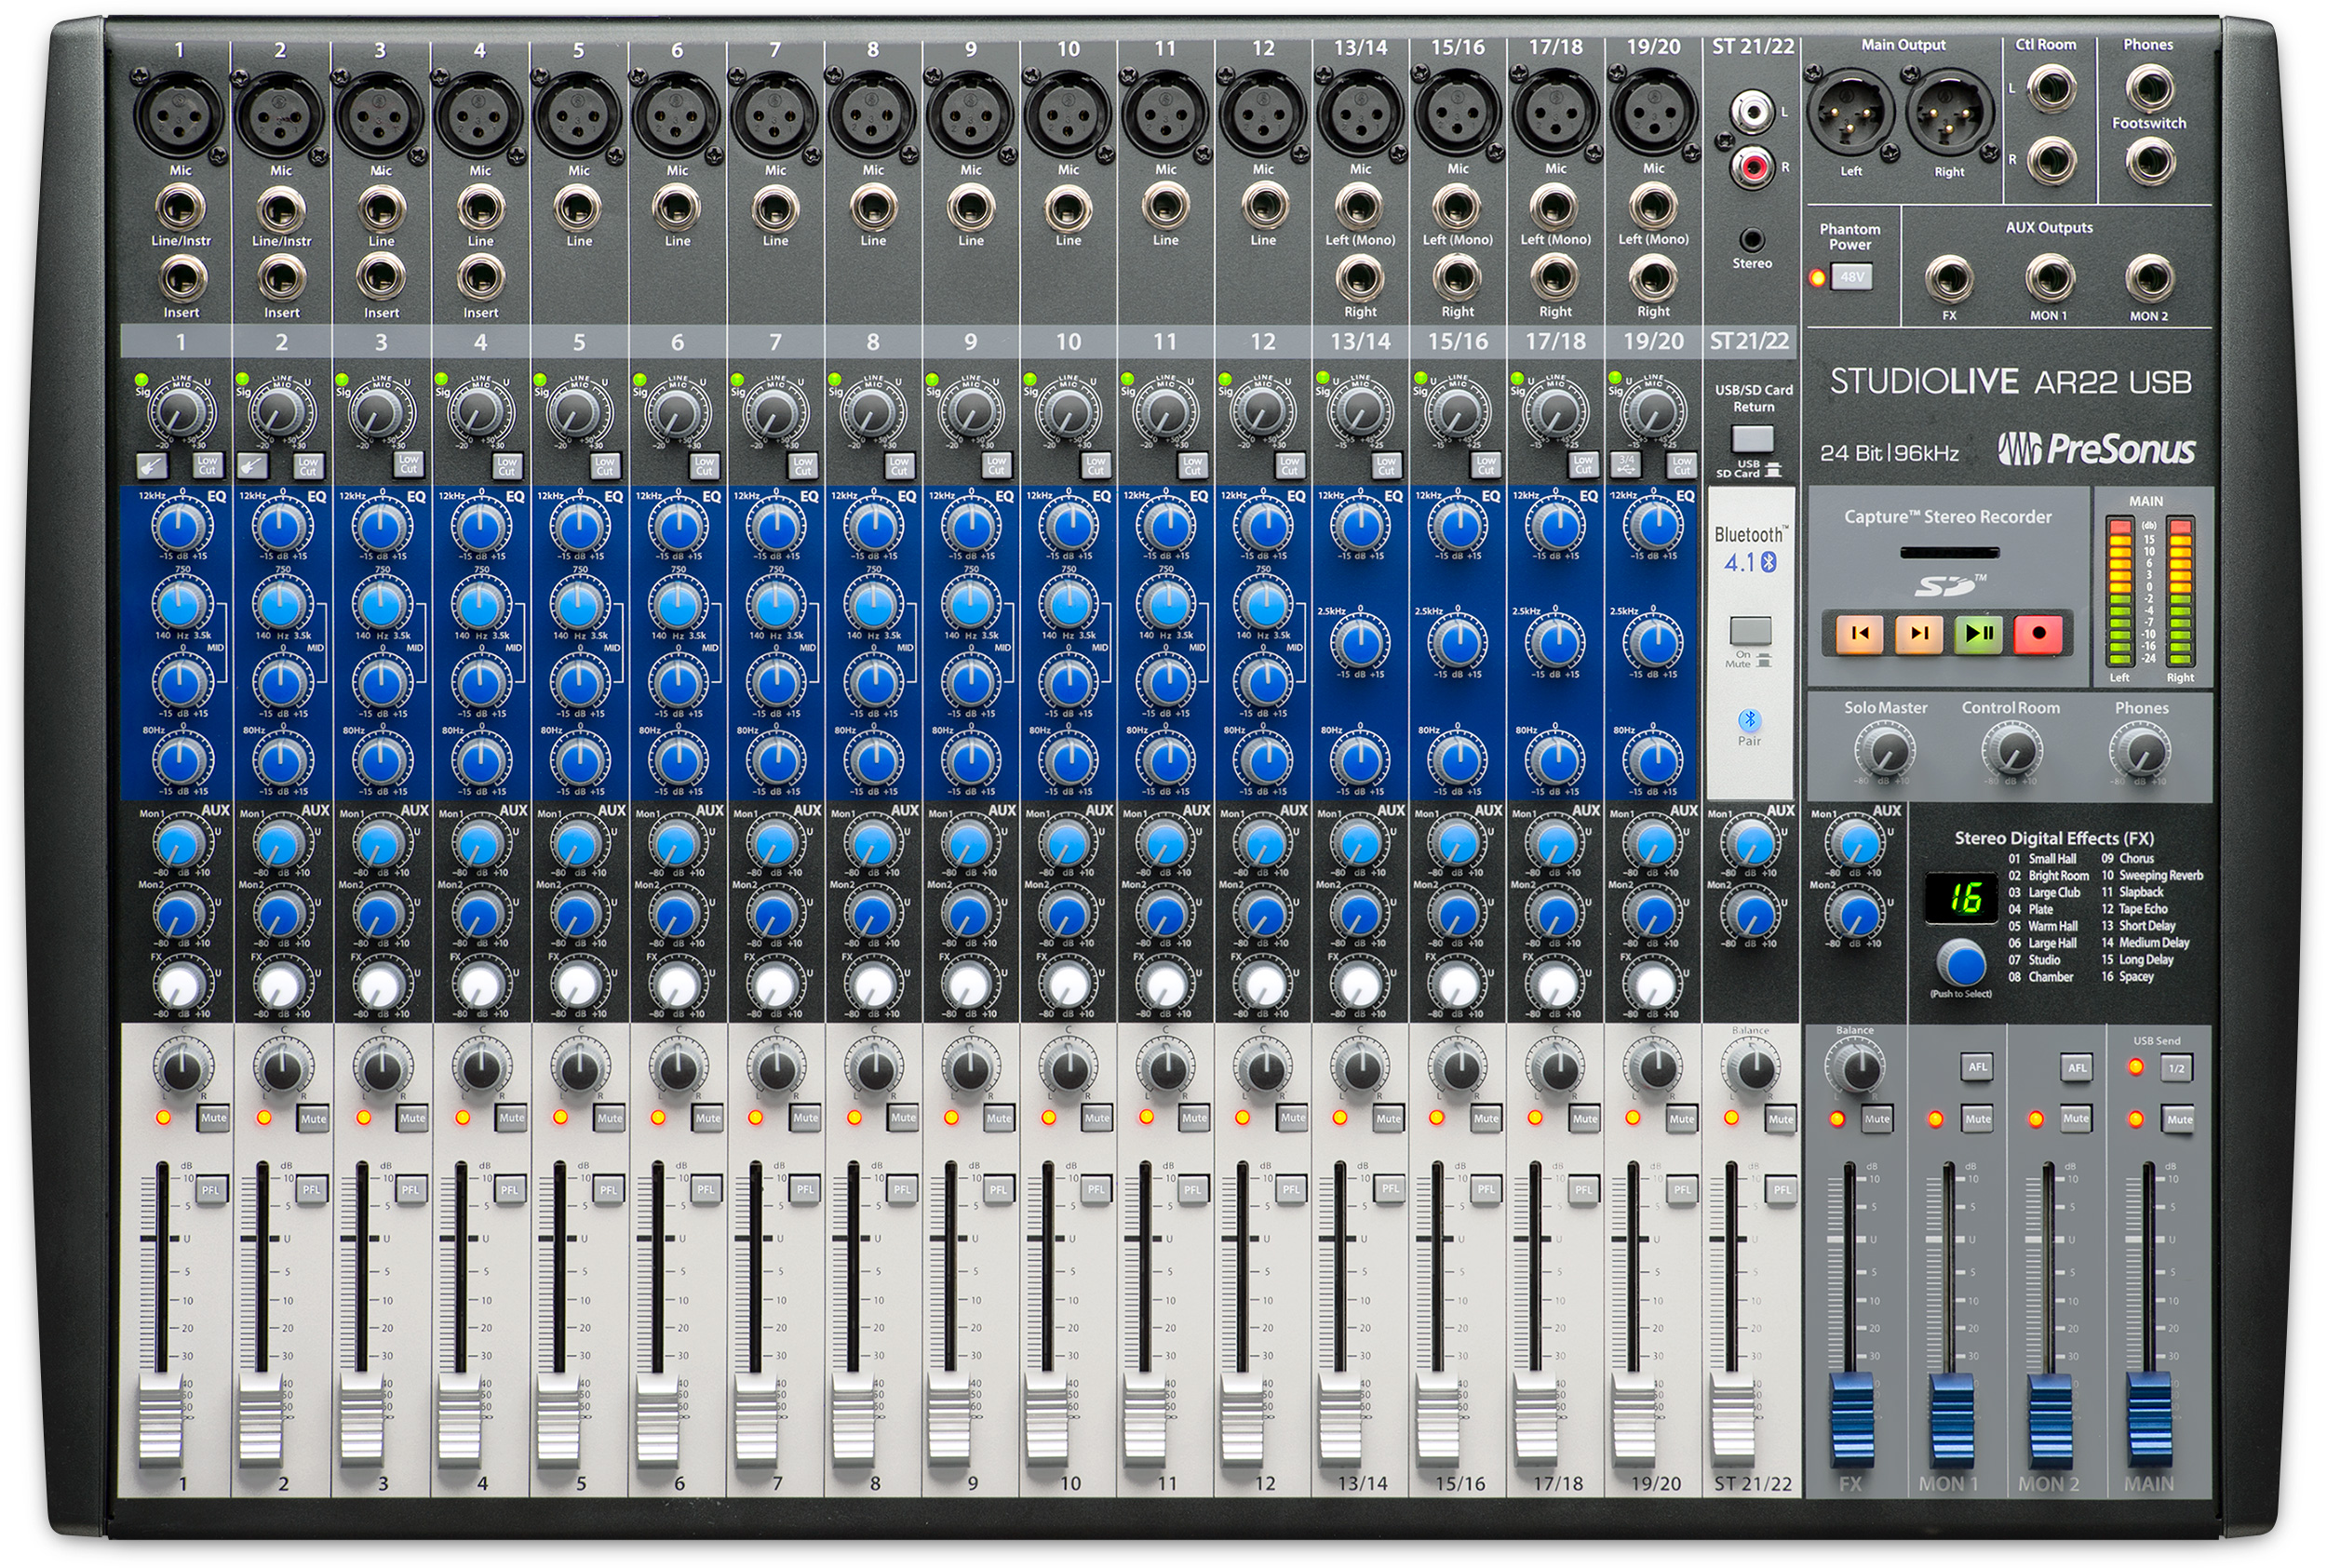 Presonus Announces Studiolive Ar22 Usb Hybrid Mixer Press Releases Stereo For Microphone With 2 Channels Each Of The Four Provides A Single Mic Input Plus Balanced Inch Left And Right Line Inputs Basic Three Band Semi Parametric Eq